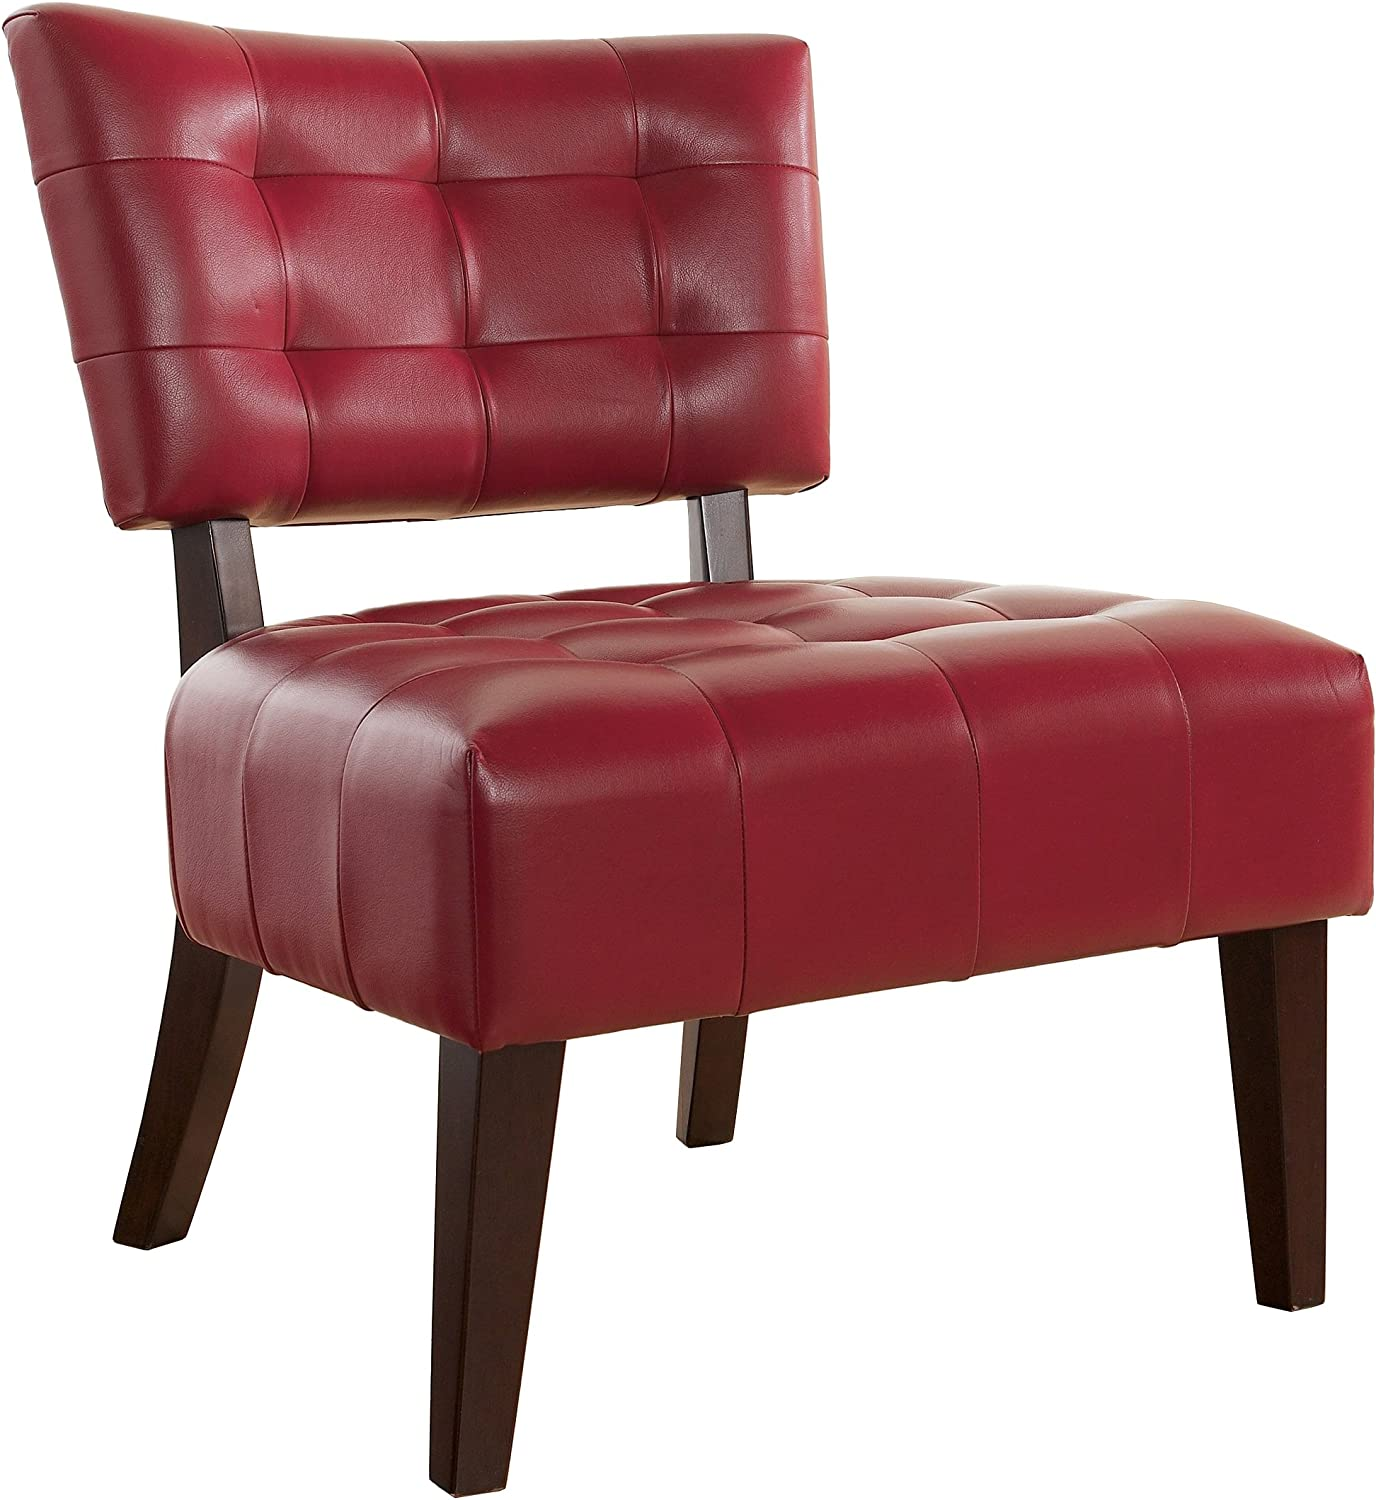 Roundhill Furniture Blended Leather Tufted Accent Chair